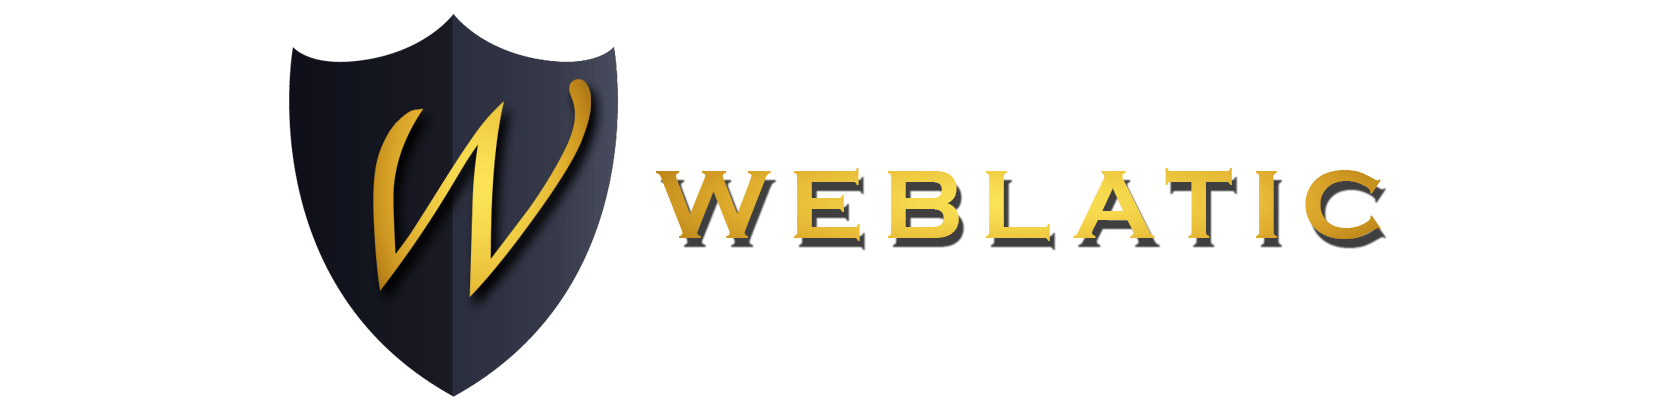 Our Website ( Weblatic.com )